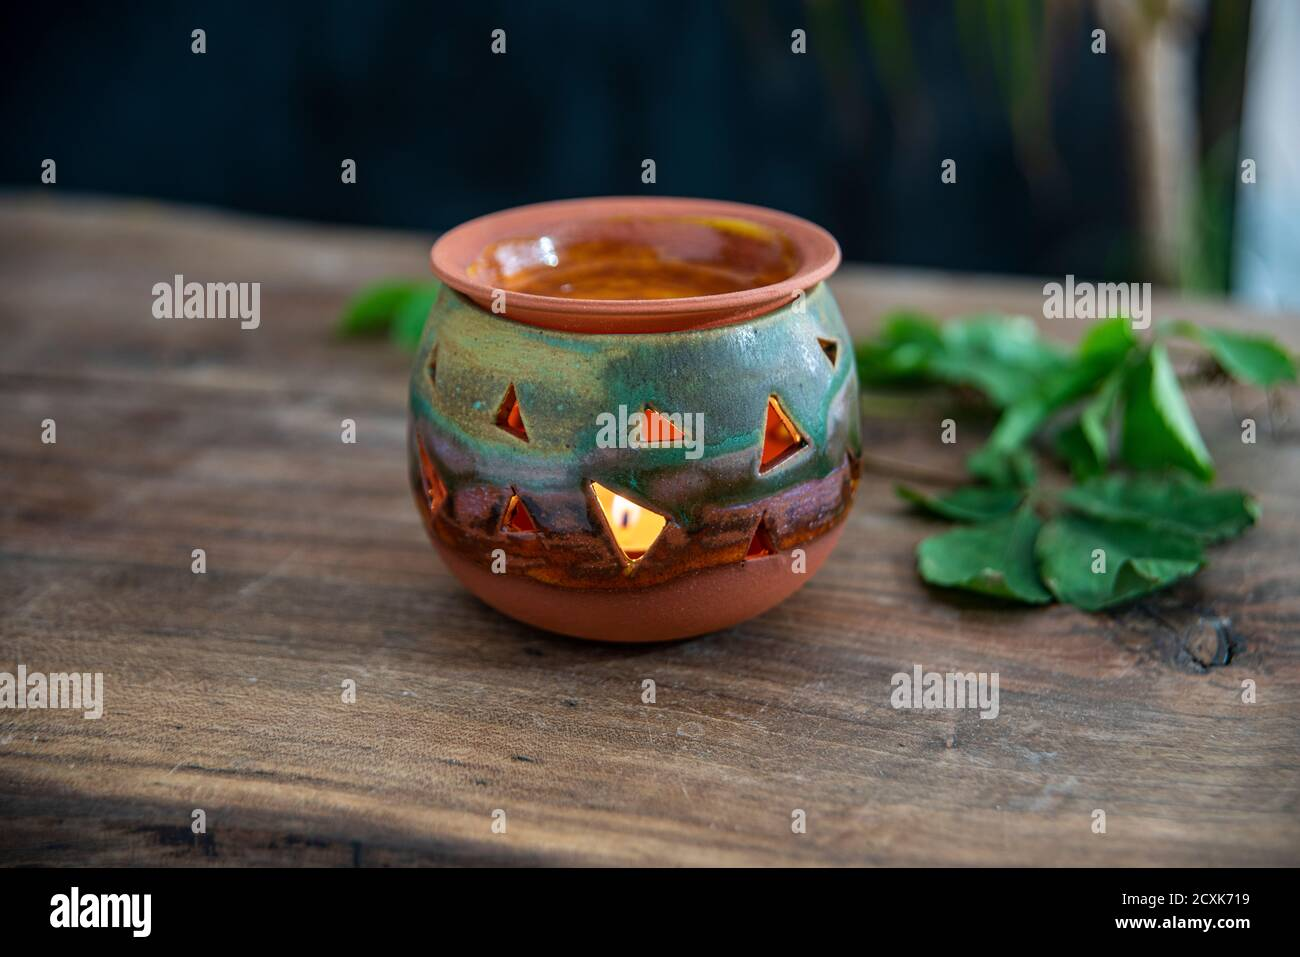 Handmade Ceramic Candle Holder Lantern Stock Photo Alamy